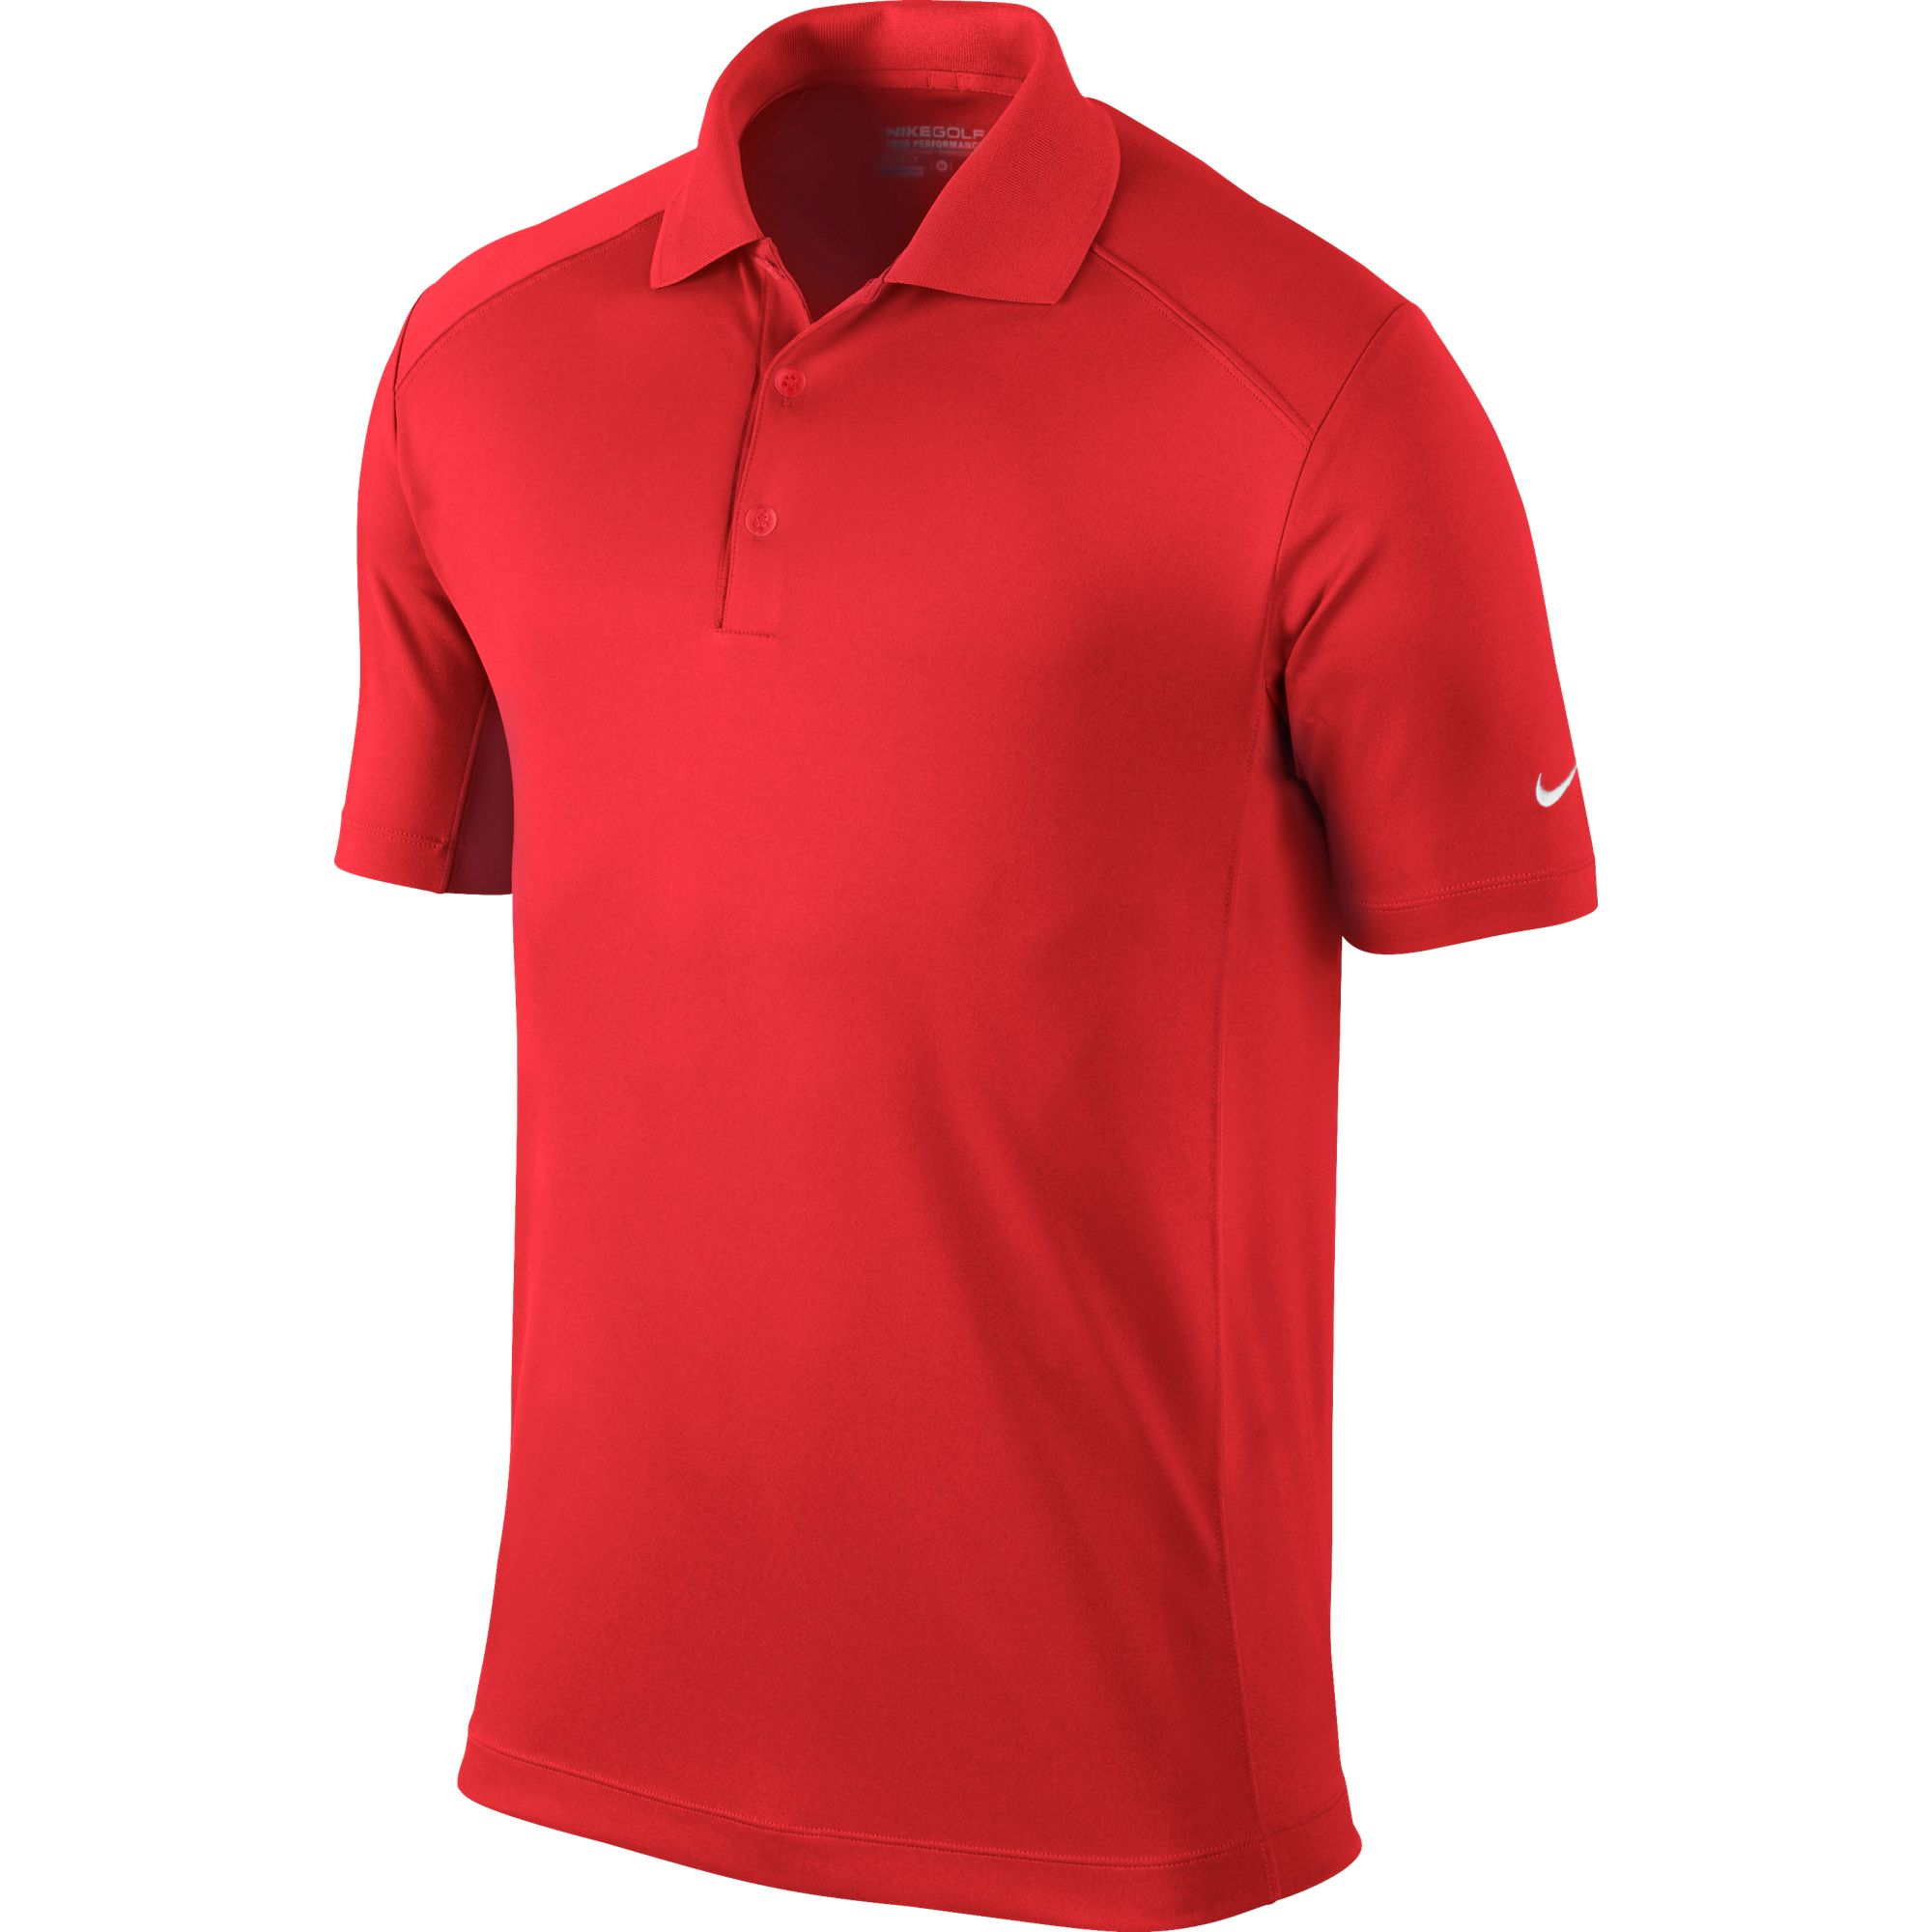 Men's Victory Solid Polo Golf Shirt, Red, swatch